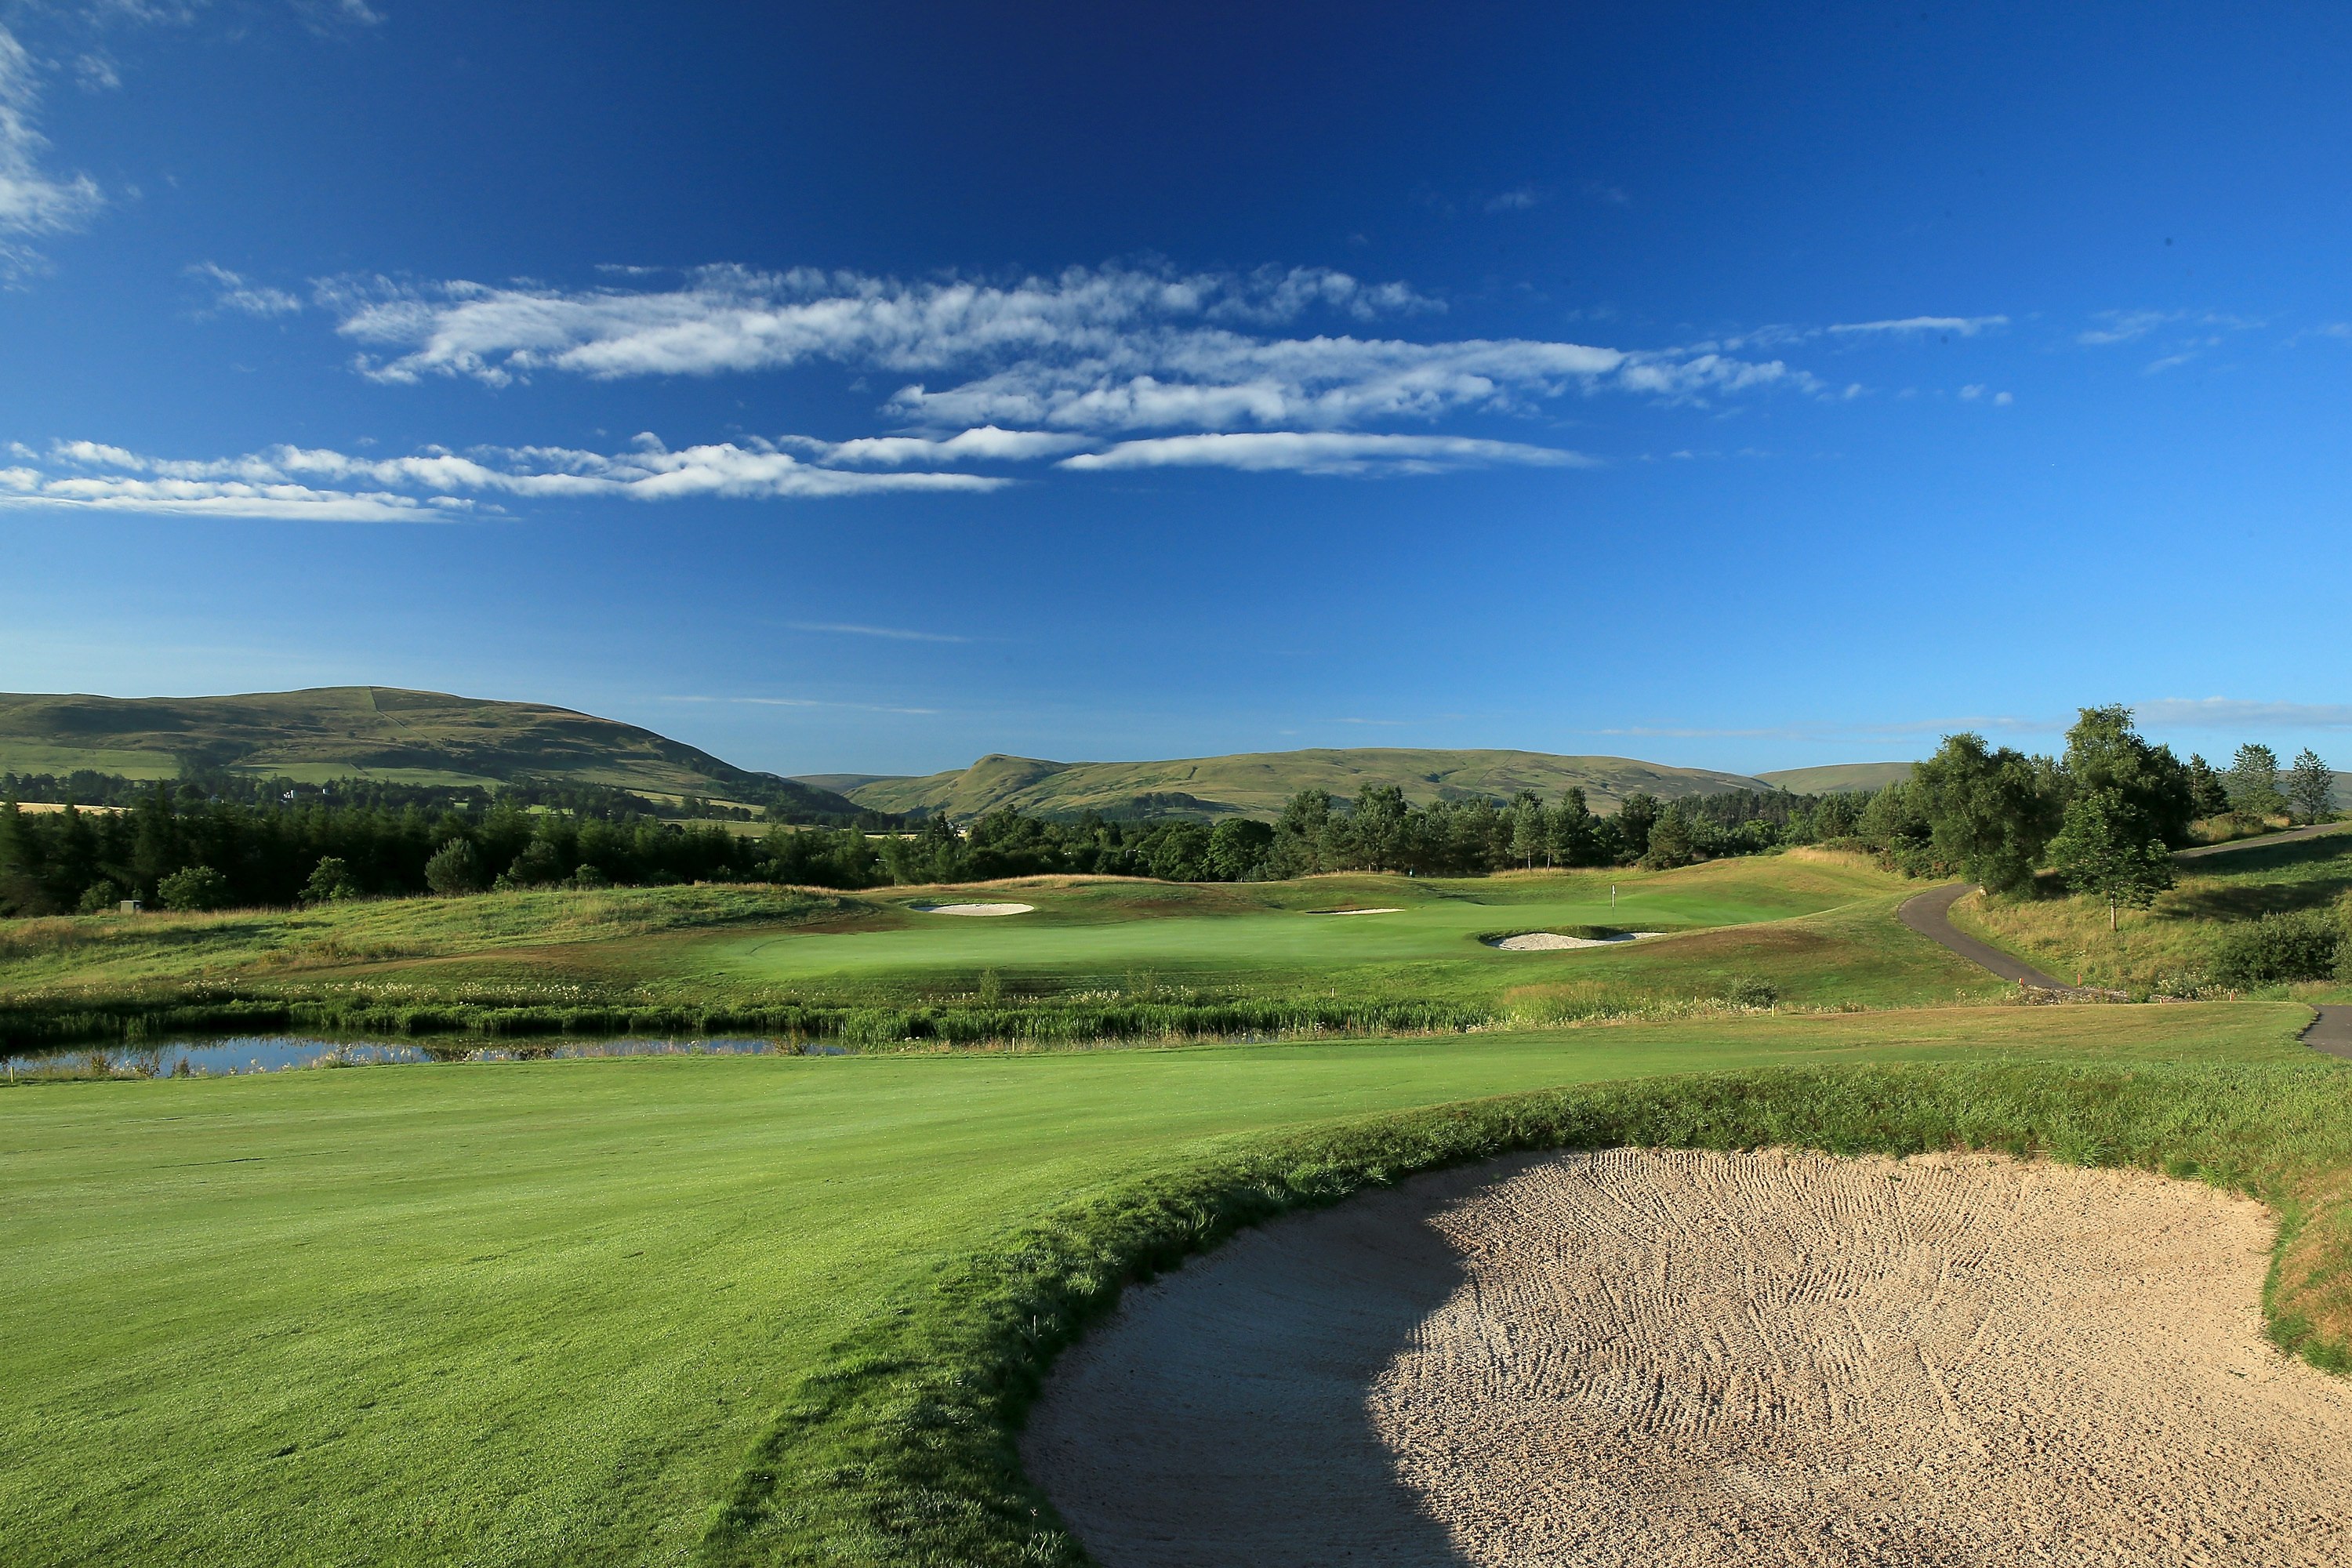 Best par-5 holes in Great Britain and Ireland - do you agree?